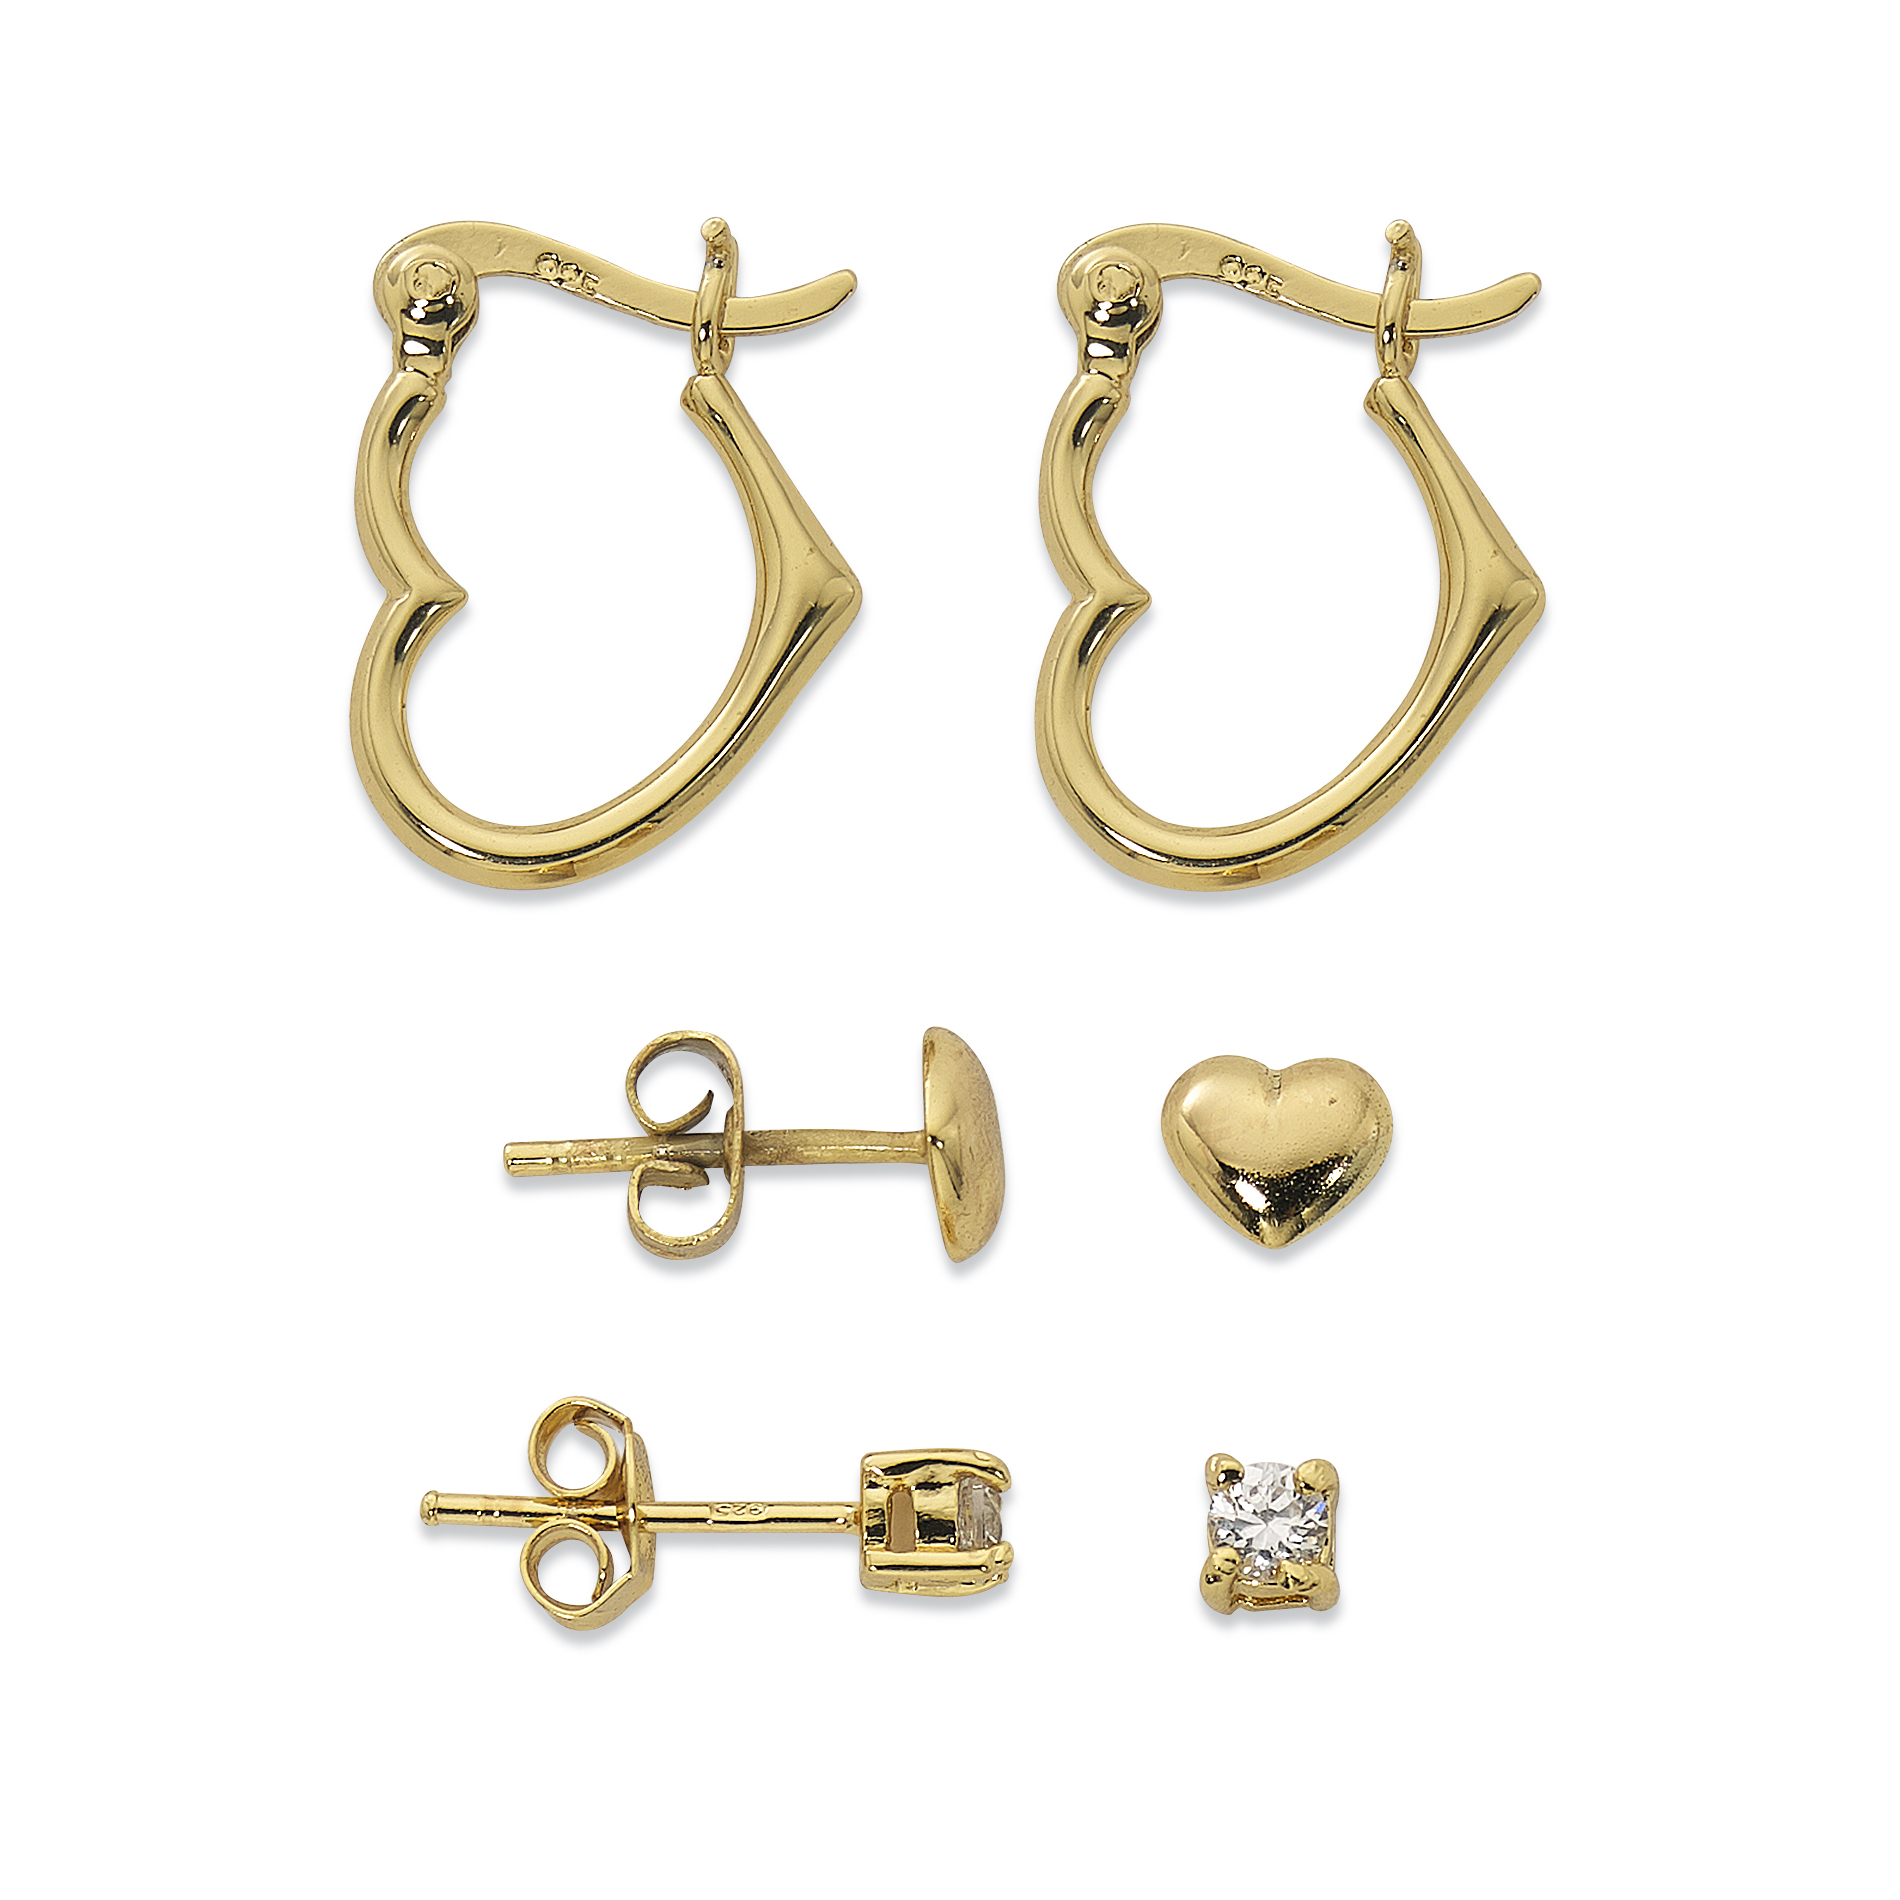 Primavera 24k Gold over Sterling Silver 3 Pair Cubic Zirconia Stud, Heart Stud and Heart Earring Set